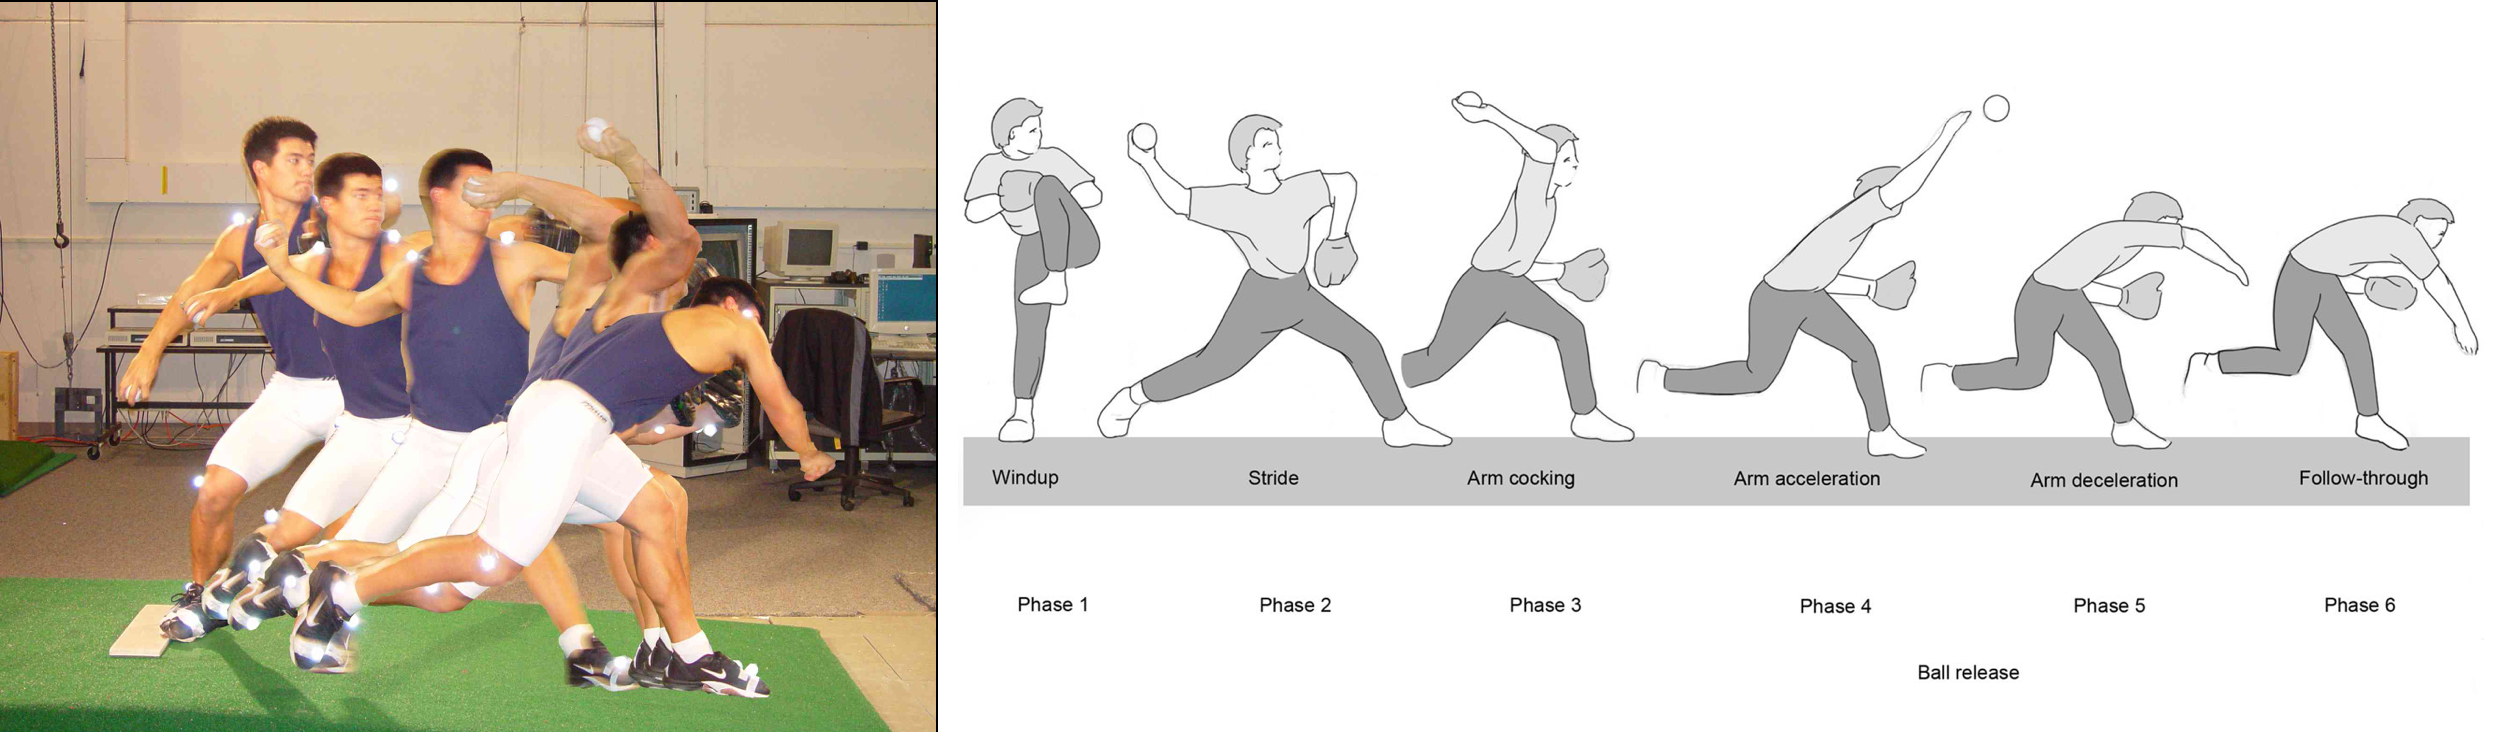 Fig 12. Throwing